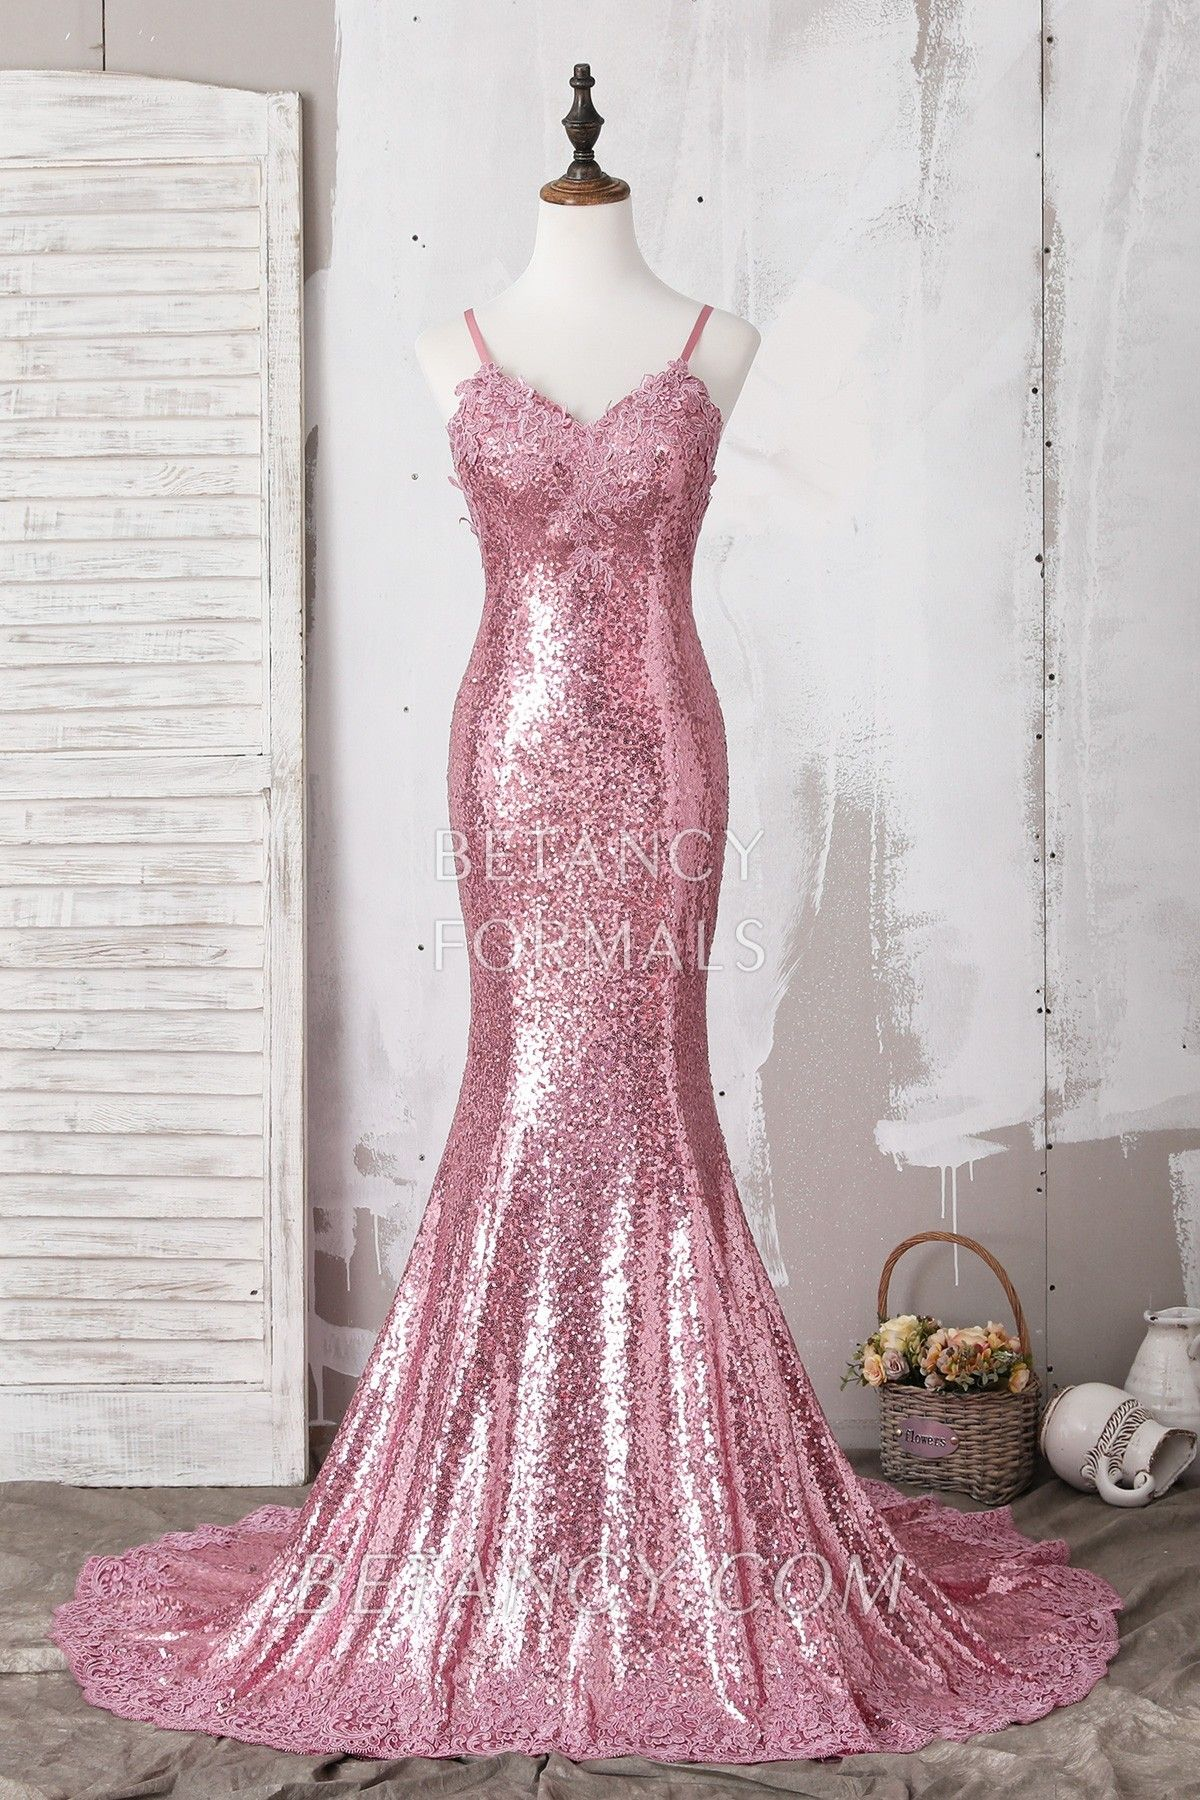 e6cfbb10915817 Elegant pink sequin mermaid long prom dress   pageant dress   military ball  dress